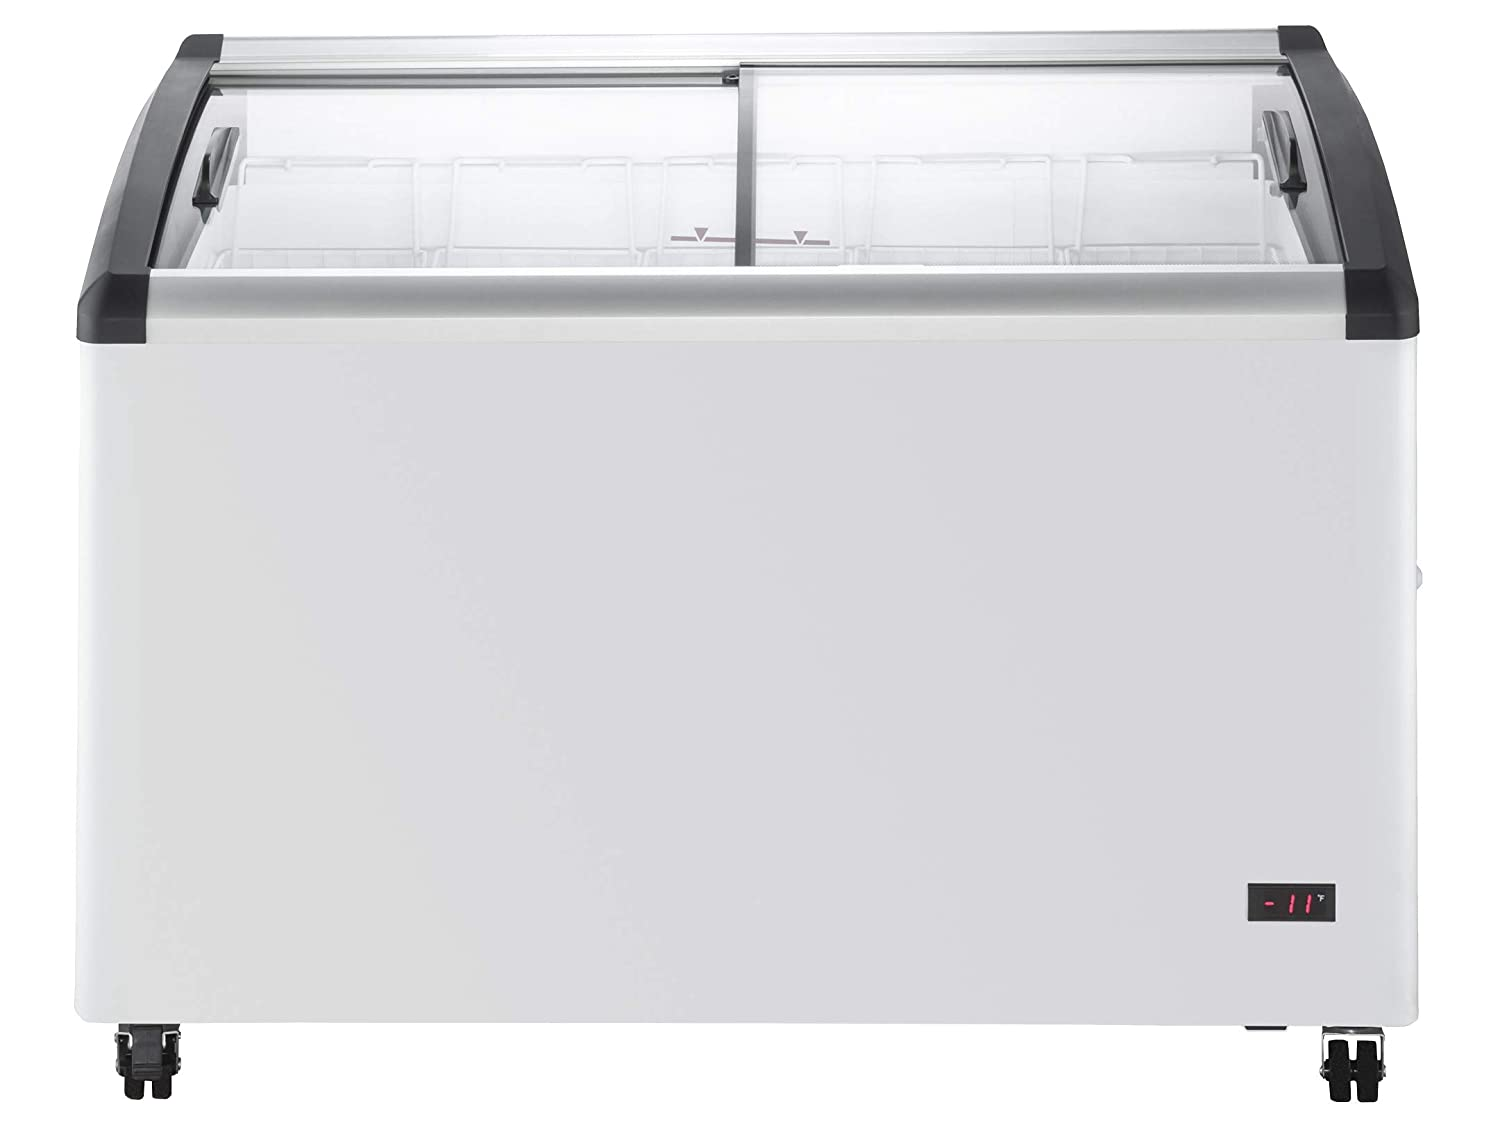 Chef's Exclusive Commercial Mobile Ice Cream Display Chest Freezer Curved Sliding Glass Lids Frost Free Sub Zero with 5 Wire Baskets, 47.4 Inch Wide, White 61cVN7S66DL._SL1500_